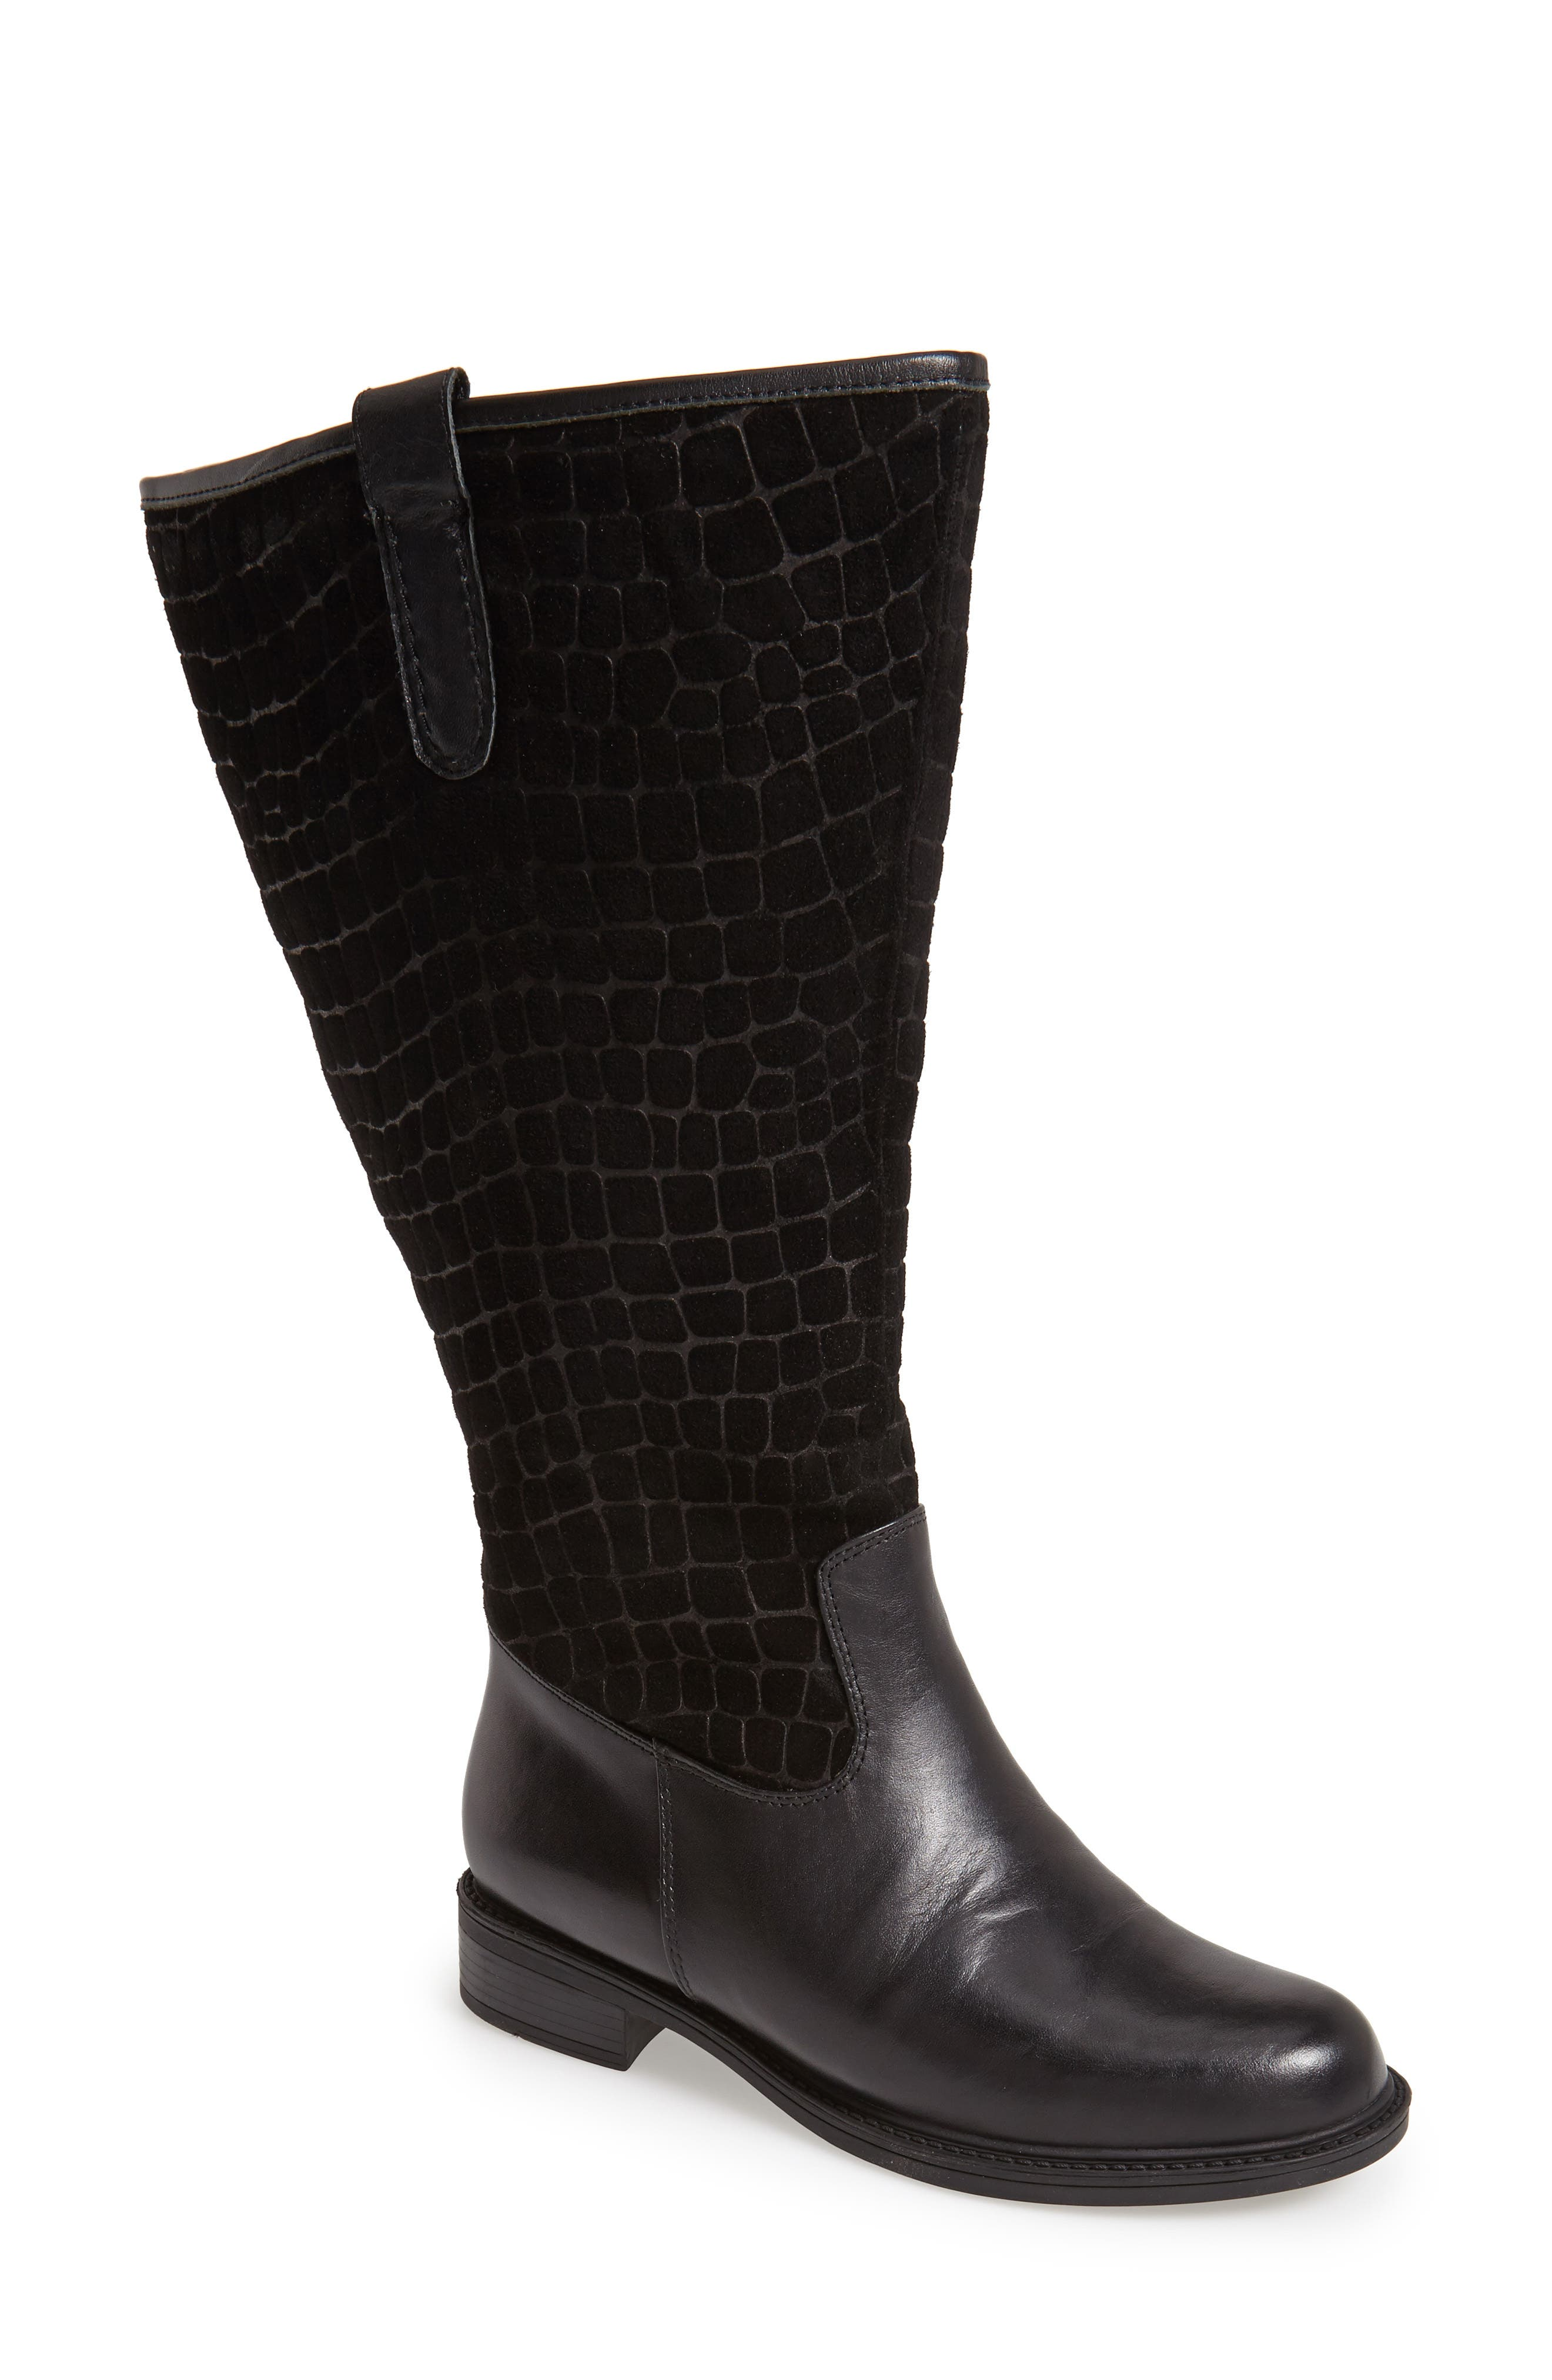 'Best' Calfskin Leather & Suede Boot,                             Alternate thumbnail 5, color,